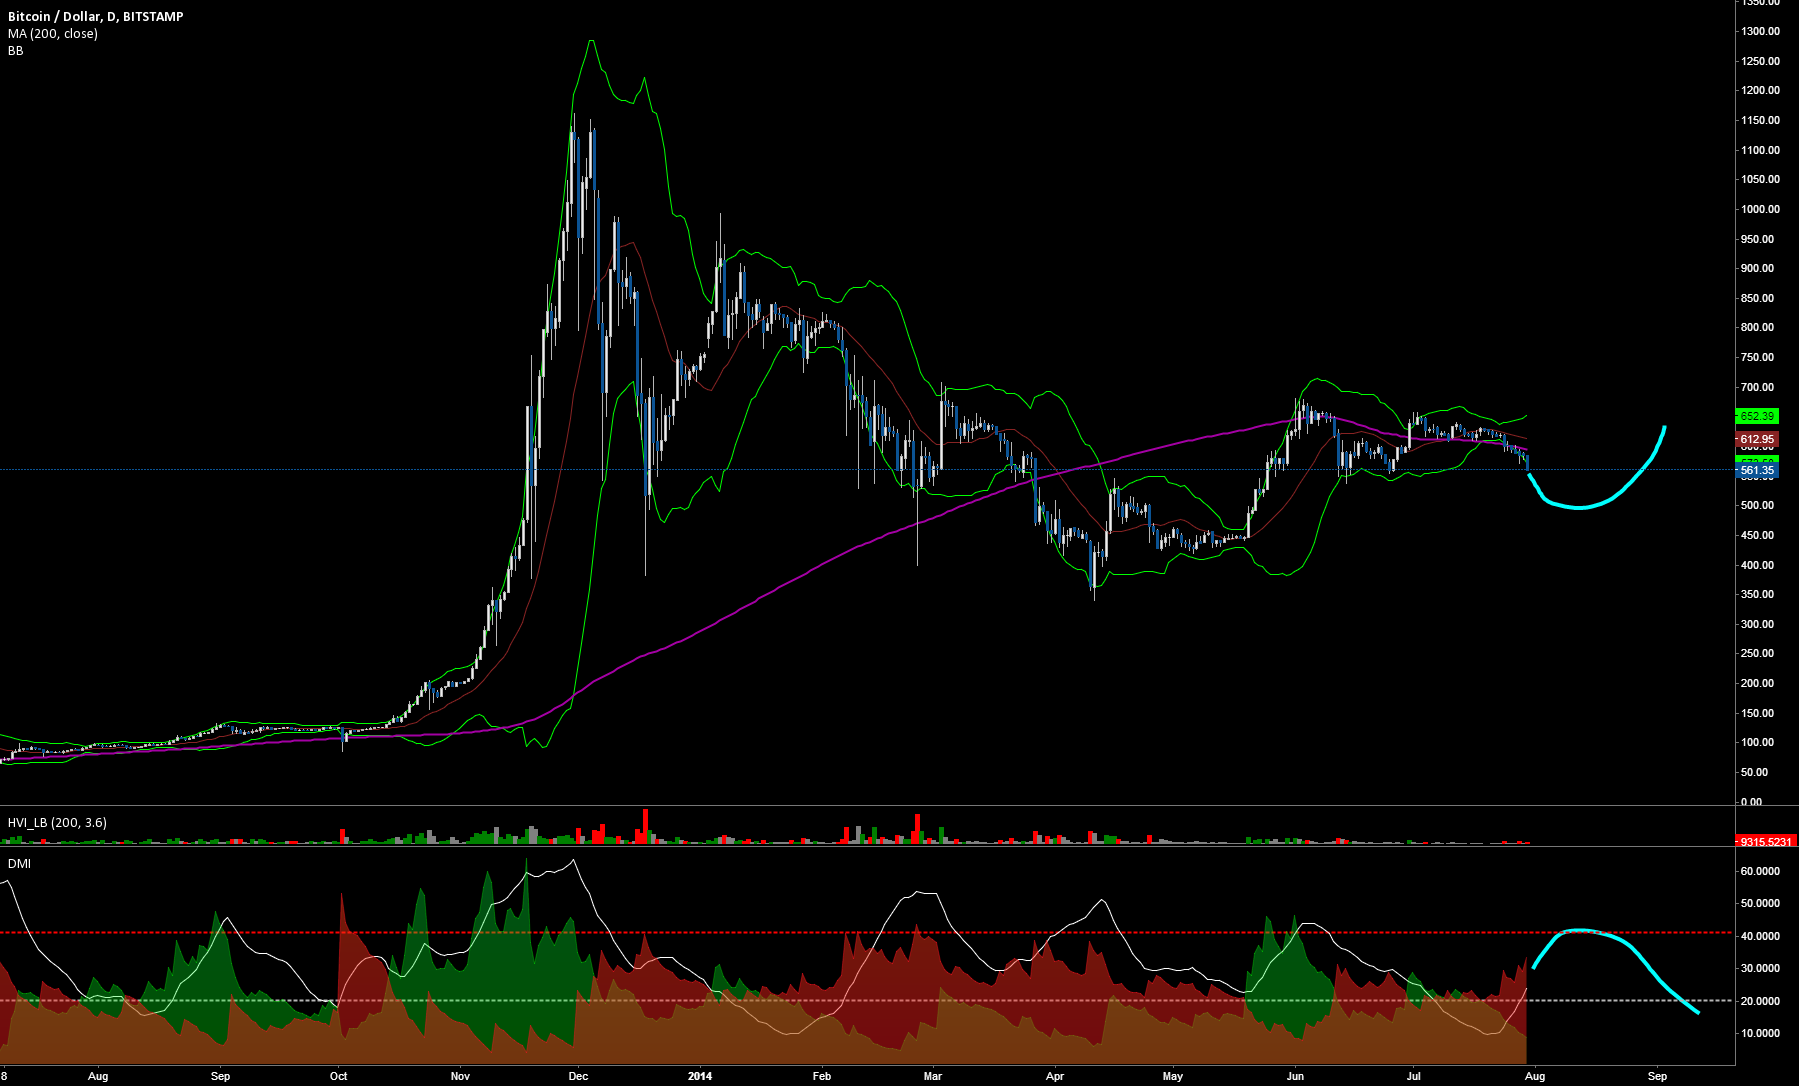 Stamp is looking mighty bearish